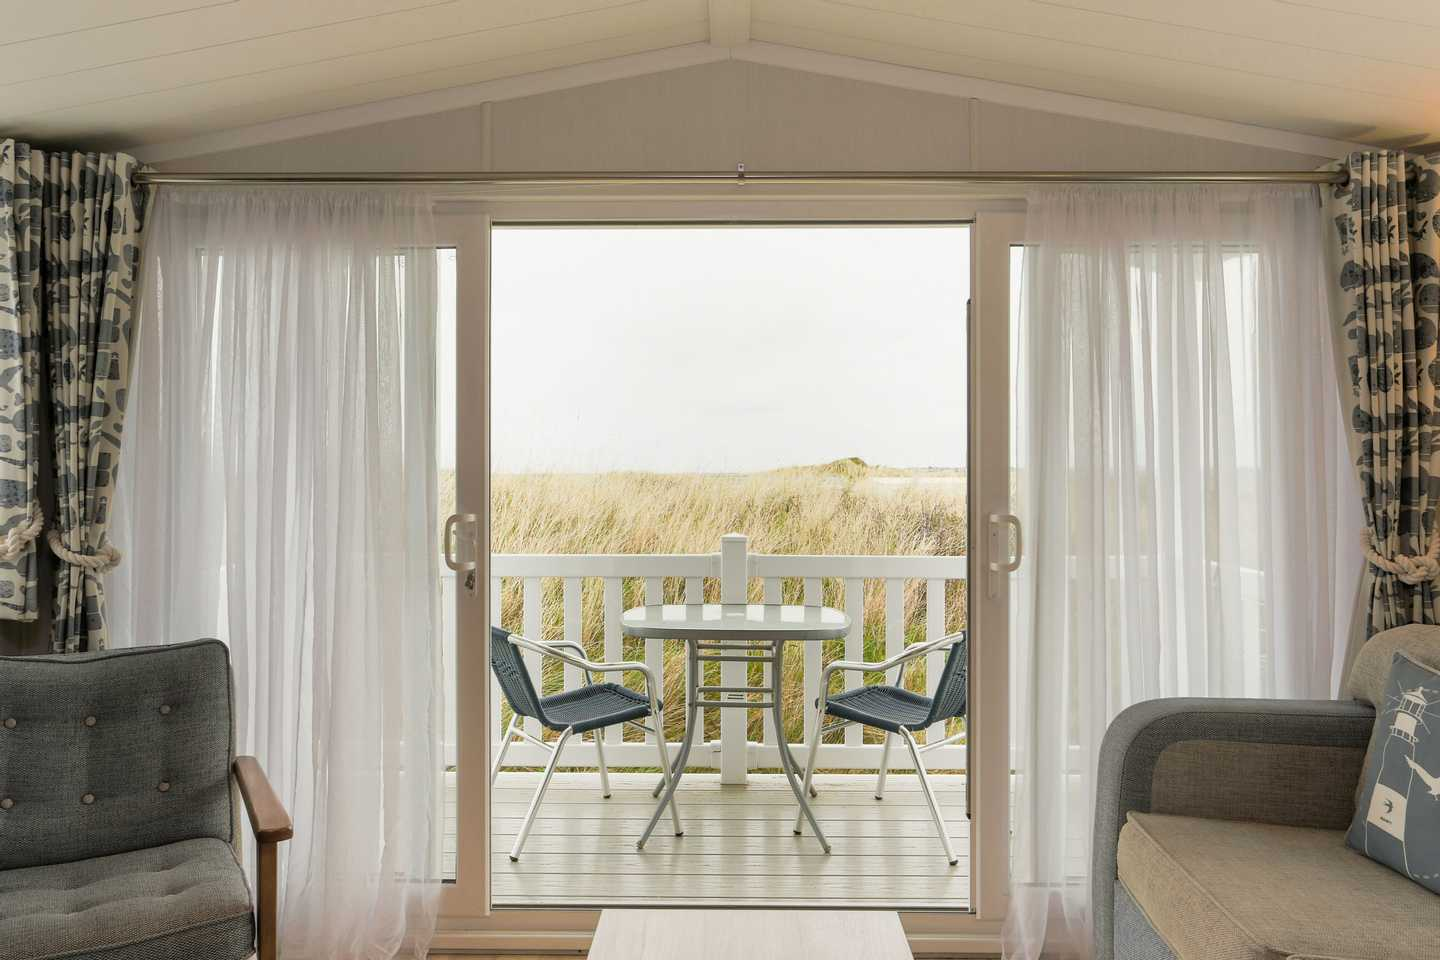 A view of the decking from inside the Platinum caravan